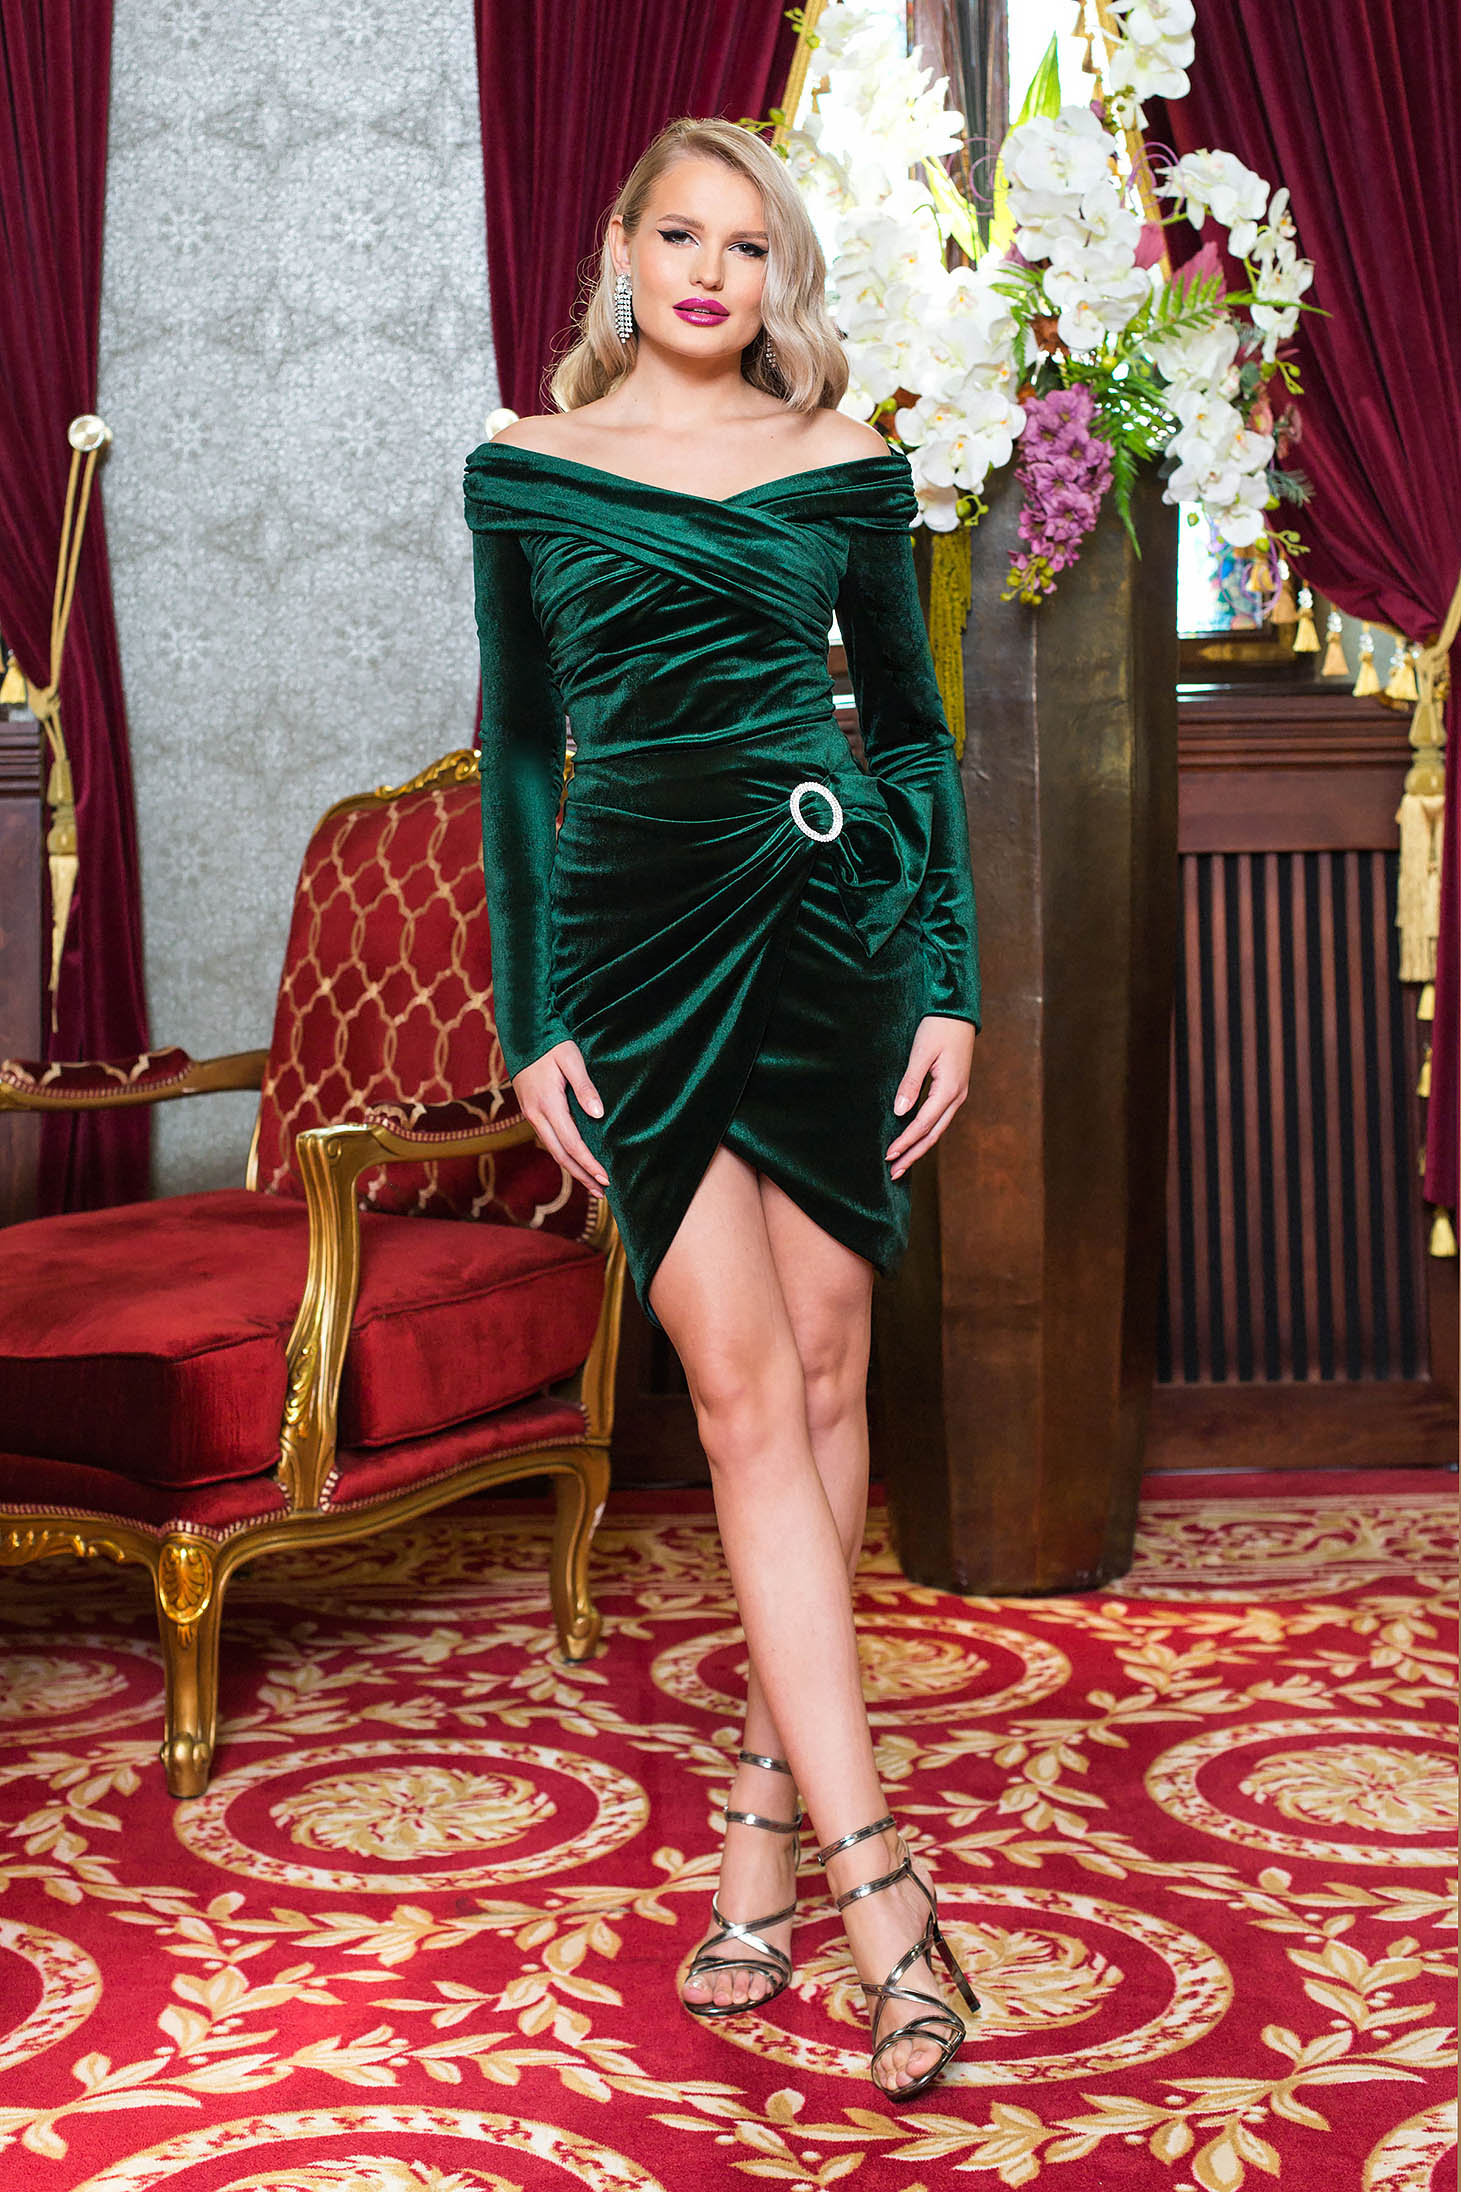 Green skirt occasional short cut pencil from velvet wrap around buckle accessory